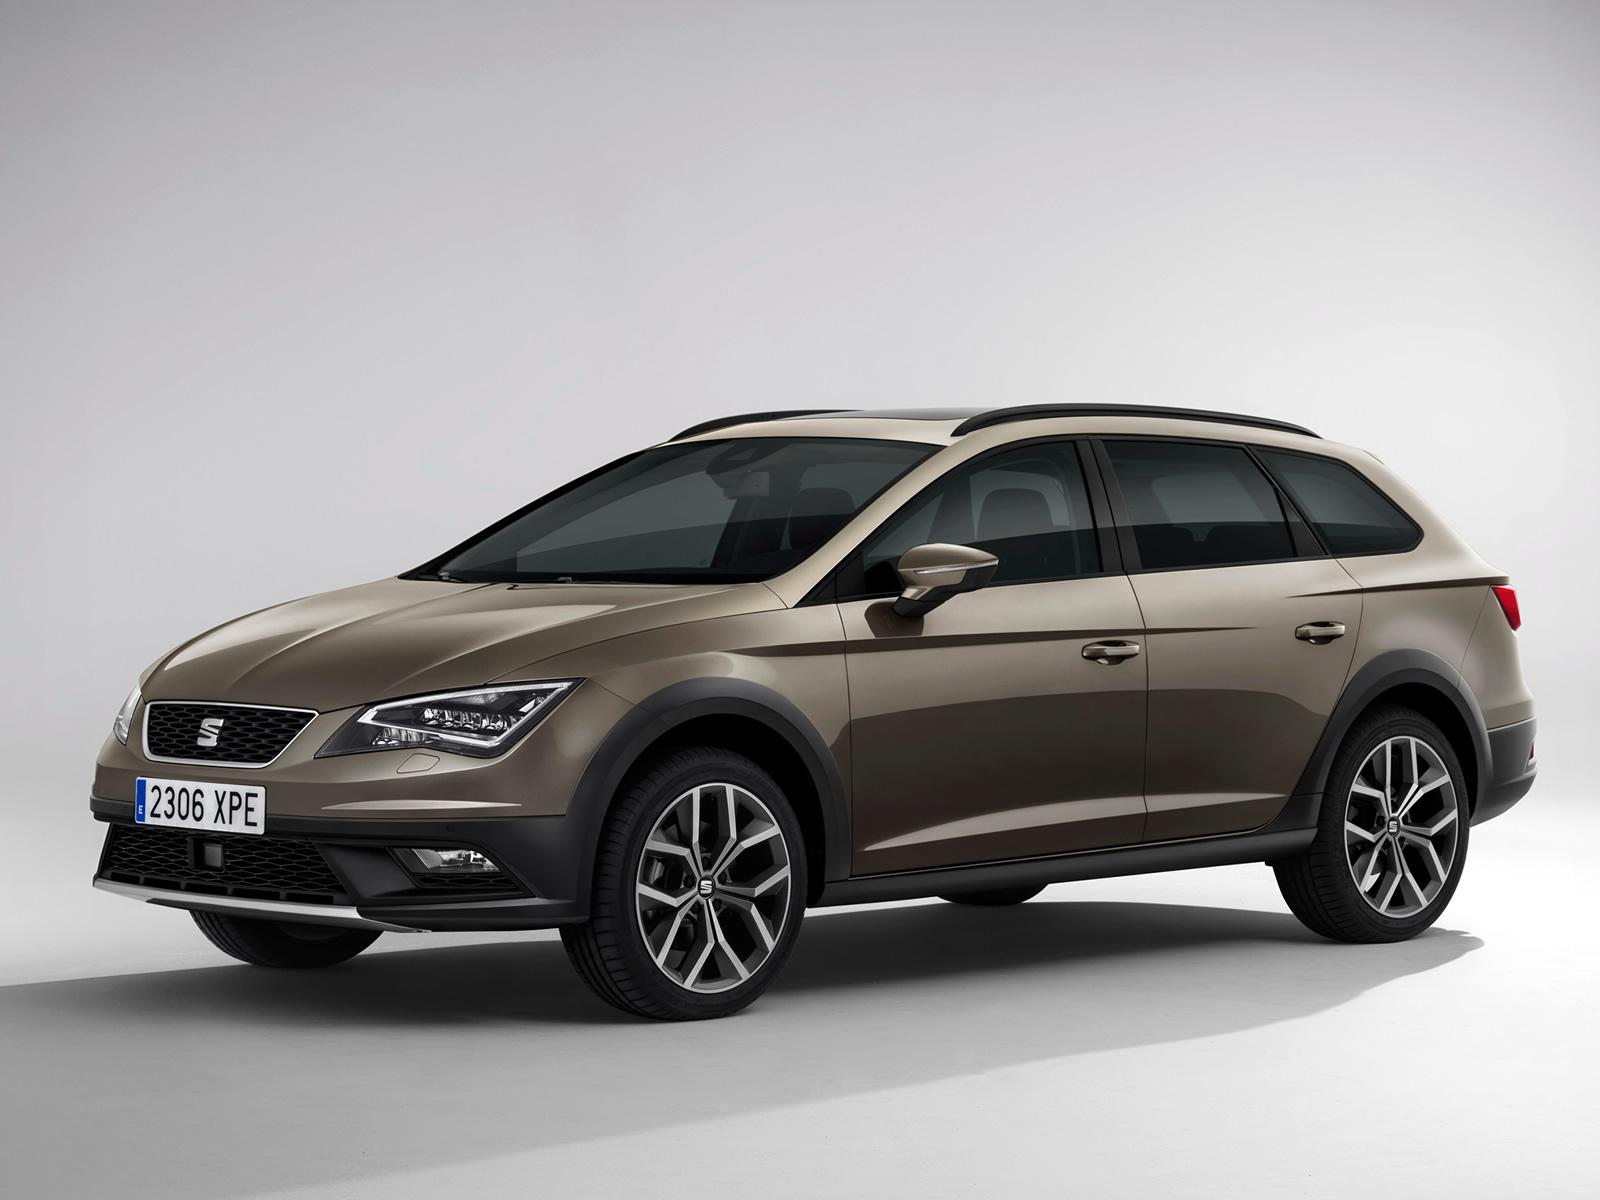 seat reveals leon x perience 4drive the spanish allroad quattro autoevolution. Black Bedroom Furniture Sets. Home Design Ideas